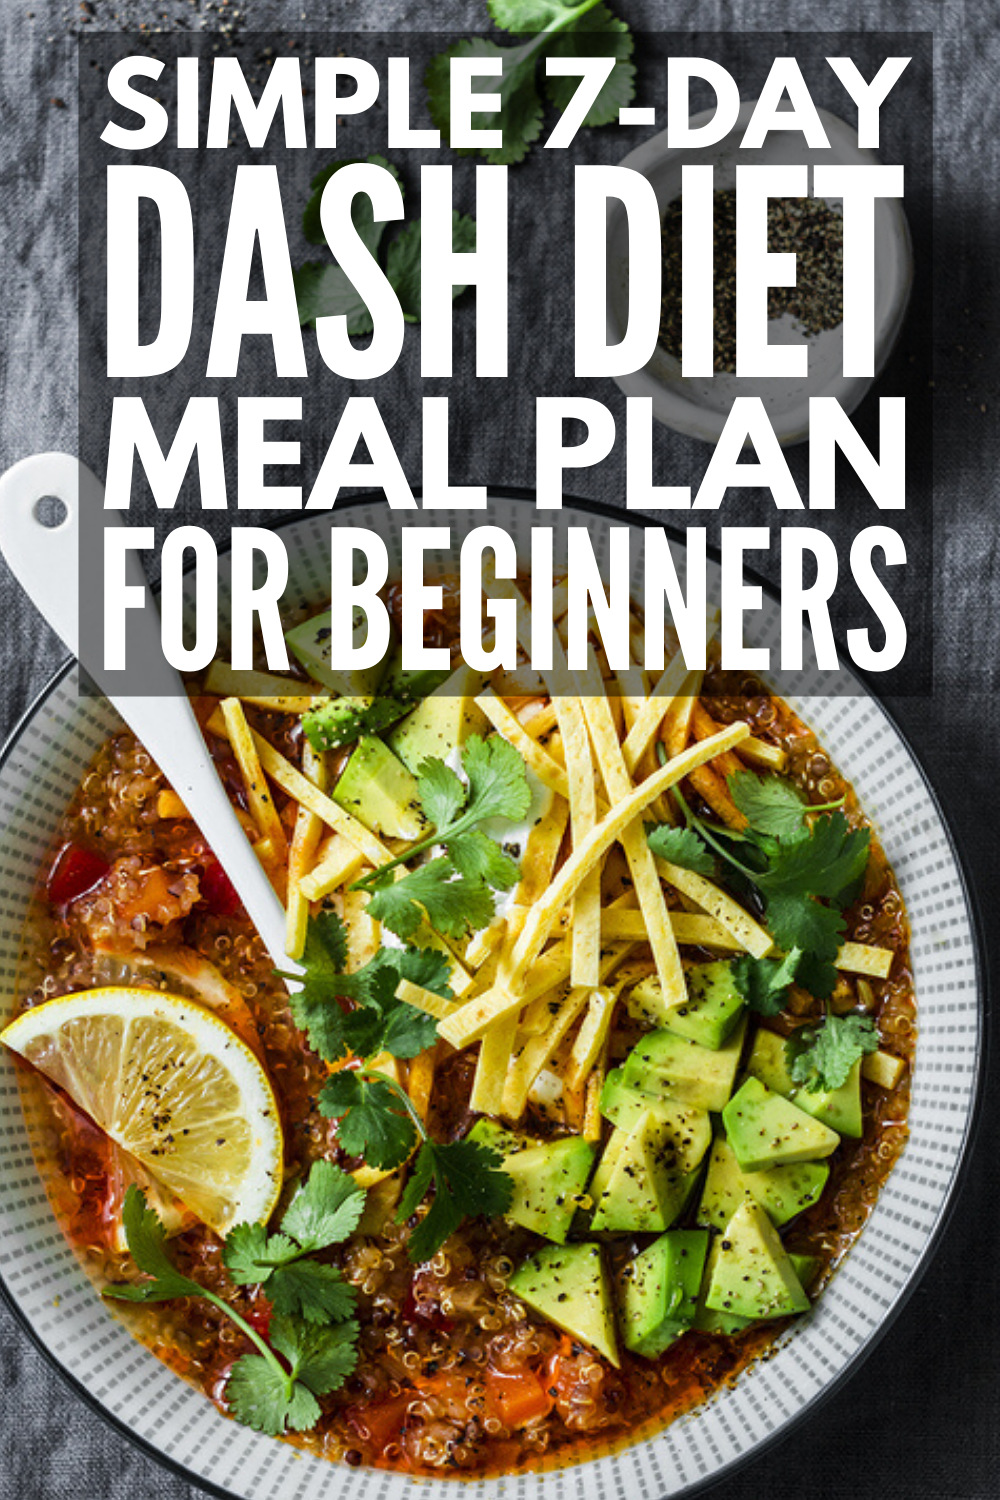 7-Day DASH Diet Meal Plan for Beginners | If you're looking for a meal plan to l...